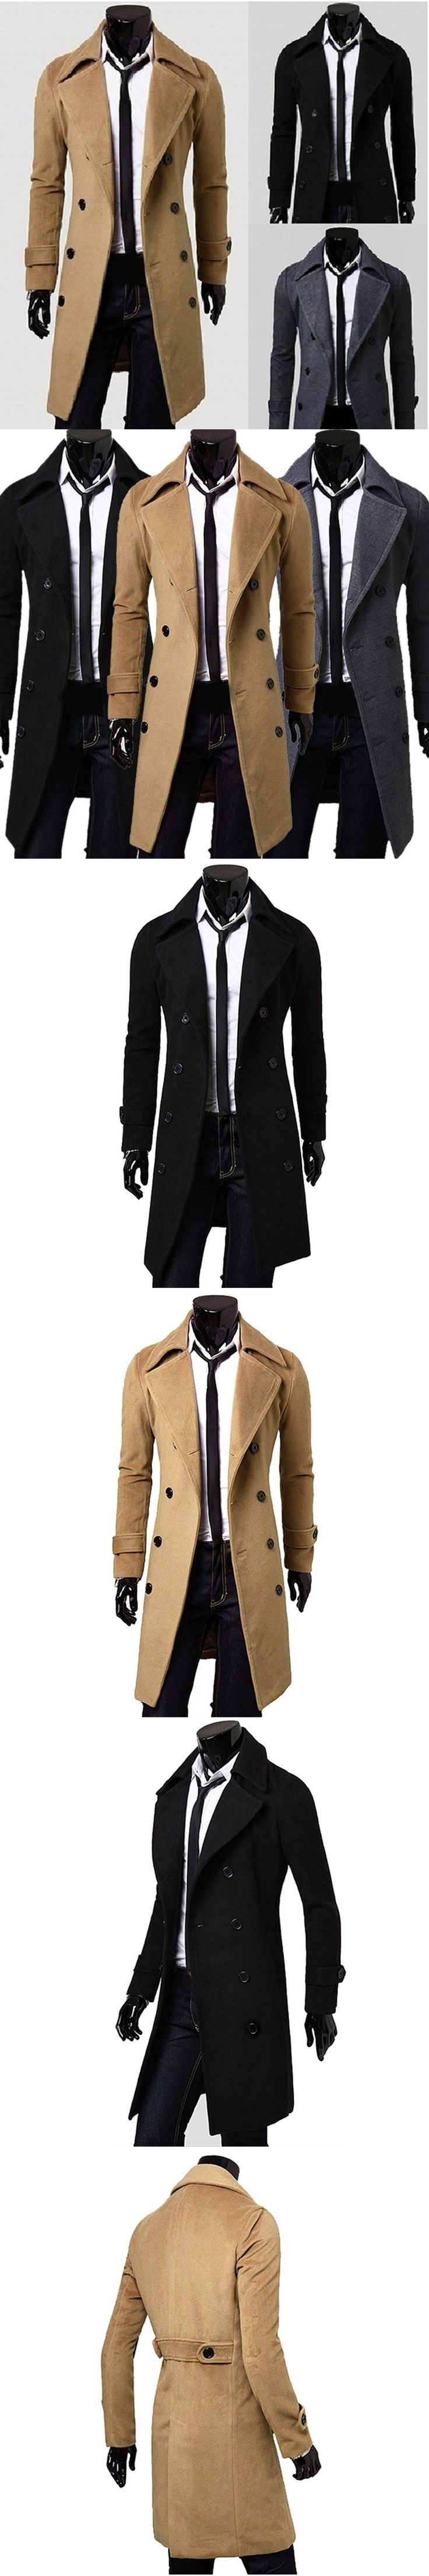 2017 New Arrival Autumn Winter Trench Coat Men Brand Clothing Fashion Mens Long Coat Top Male Overcoat Shipping From USA